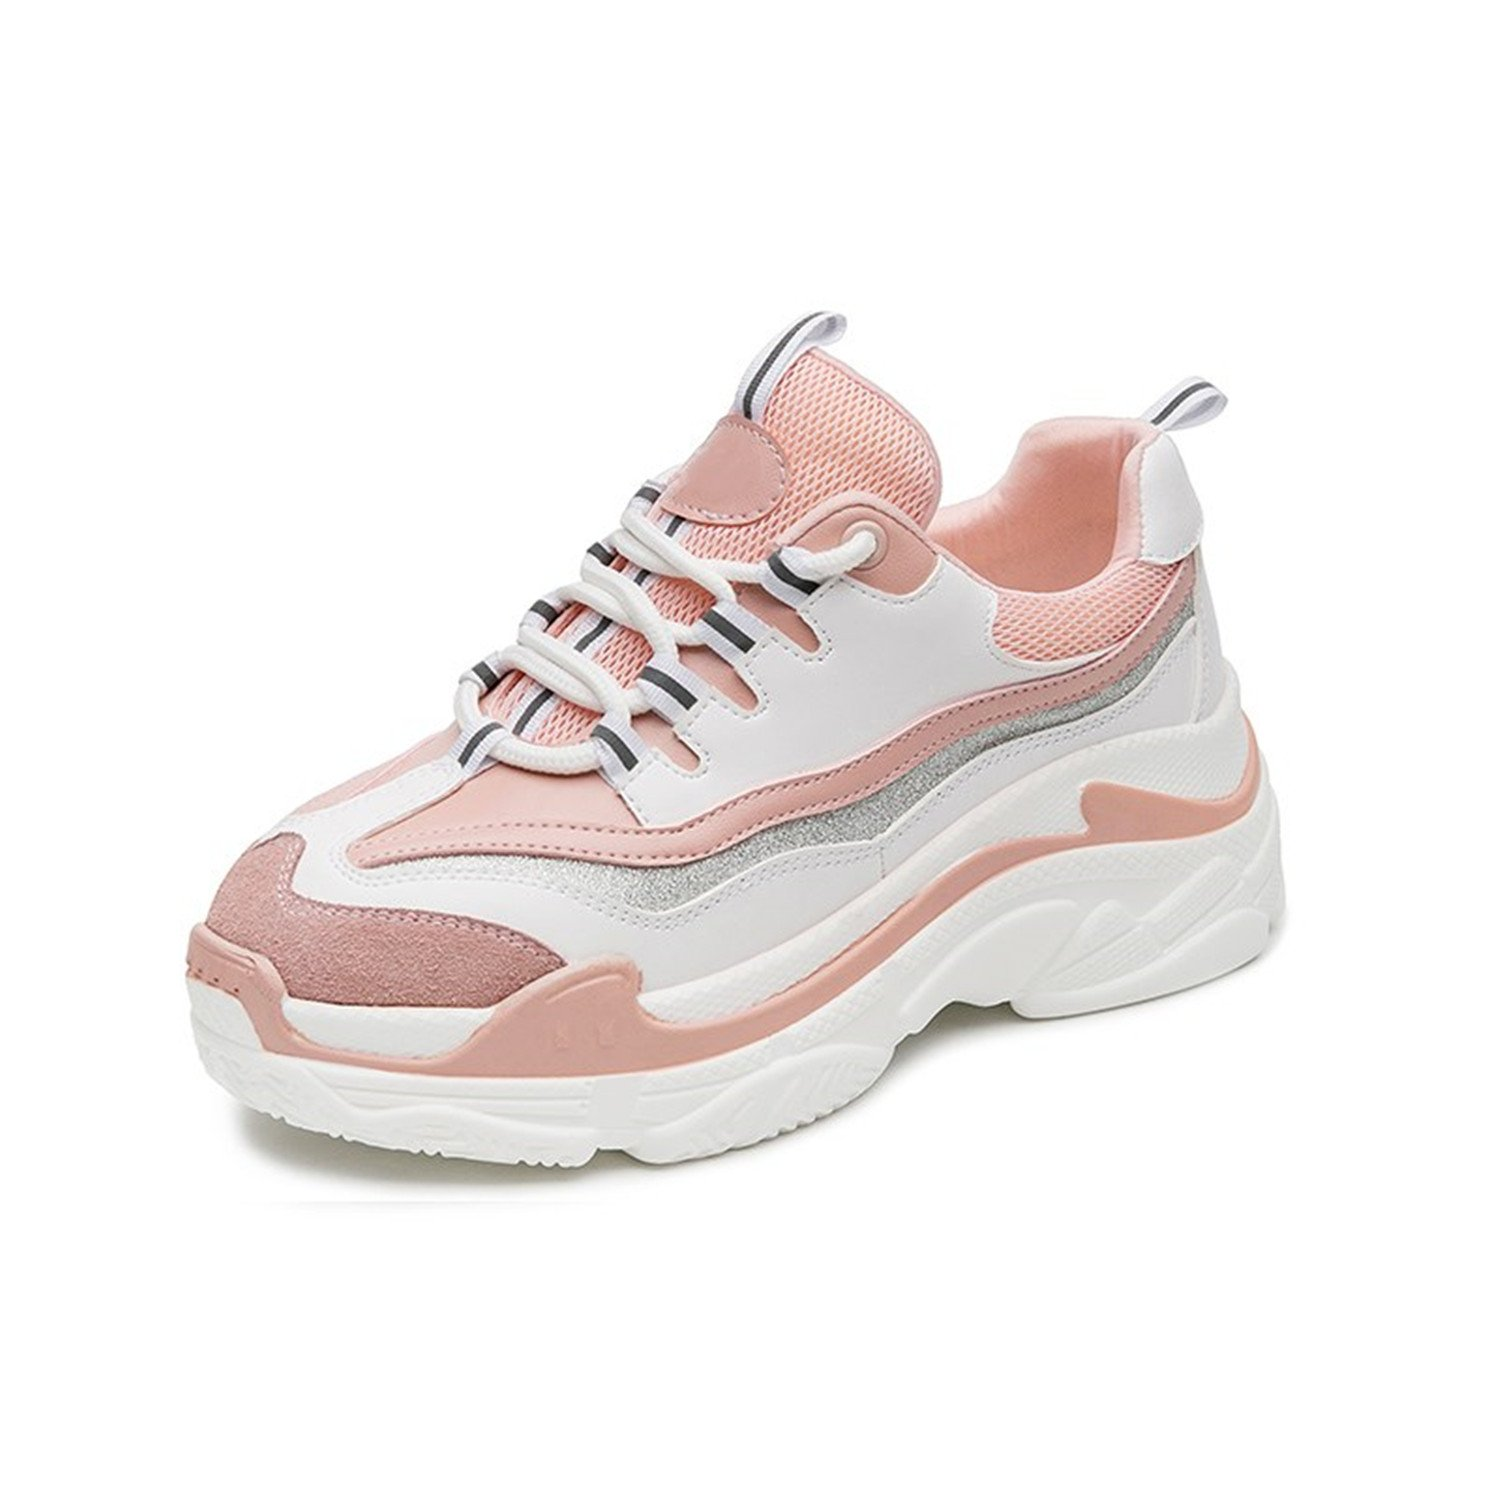 Nerefy 2018 Women Sneakers Shoes for Woman Fashion Lace-up Flat Platform Shoes White Casual Shoes